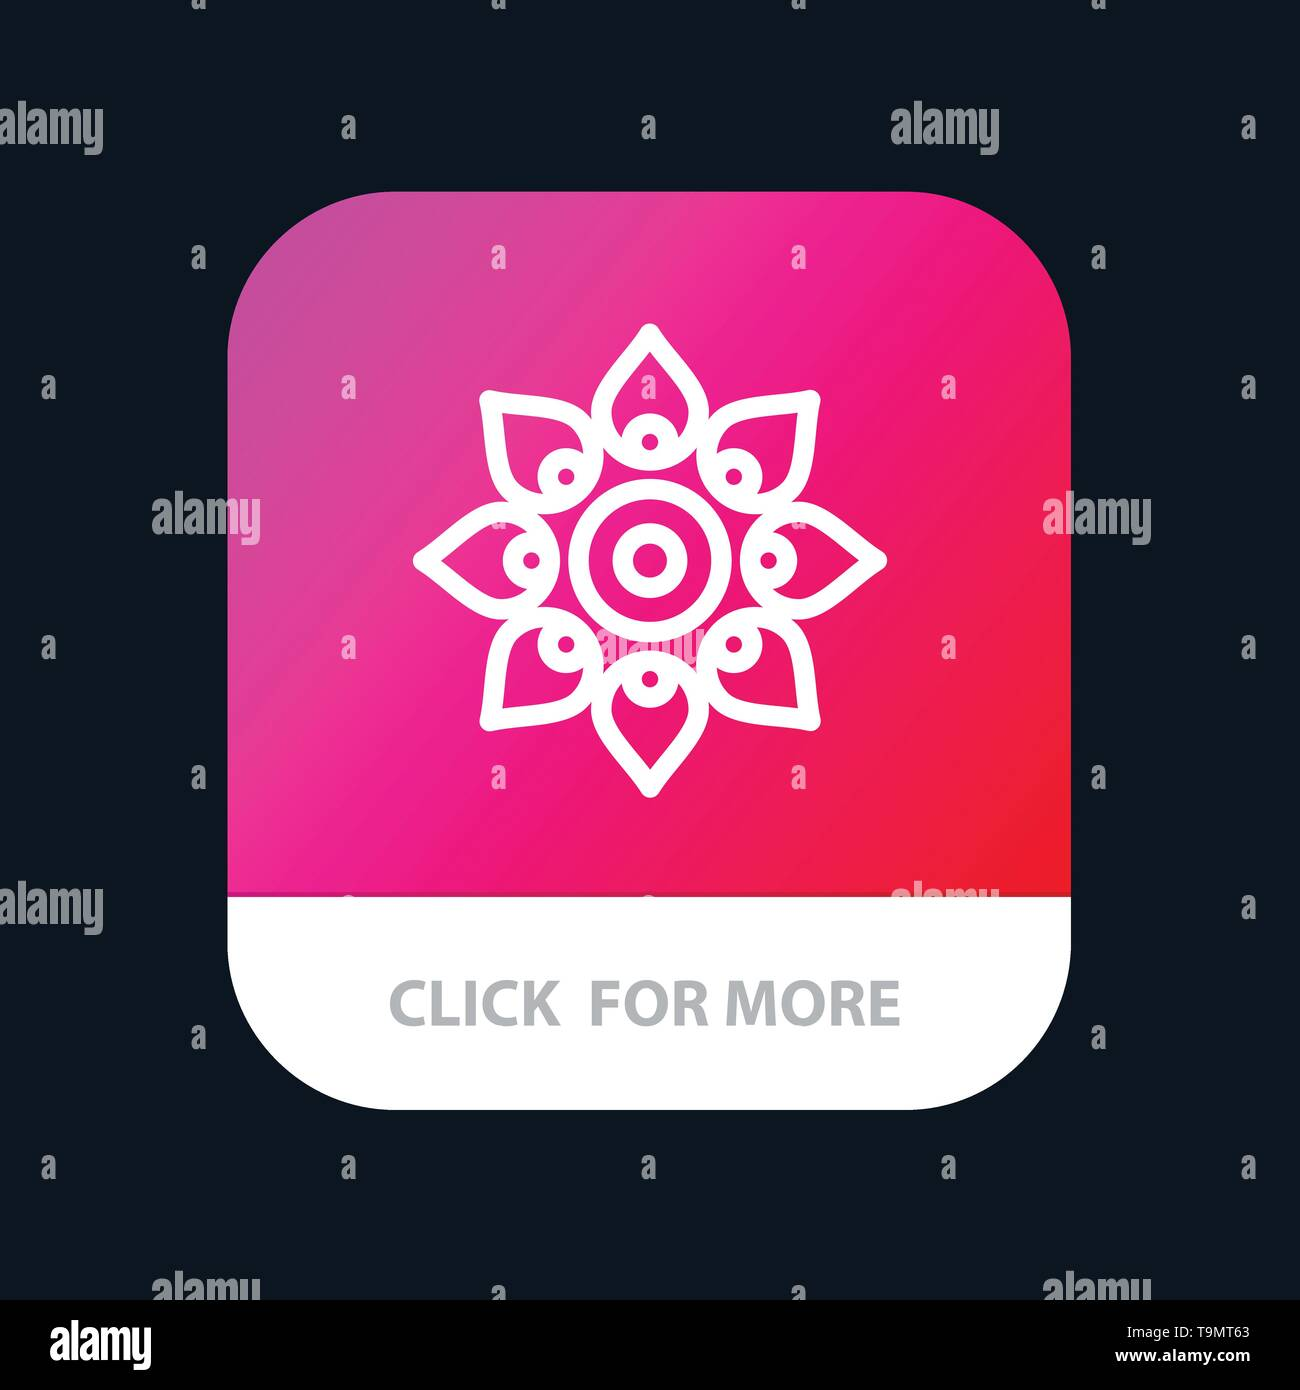 Celebrate, Decorate, Decoration, Diwali, Hindu, Holi Mobile App Button. Android and IOS Line Version - Stock Image